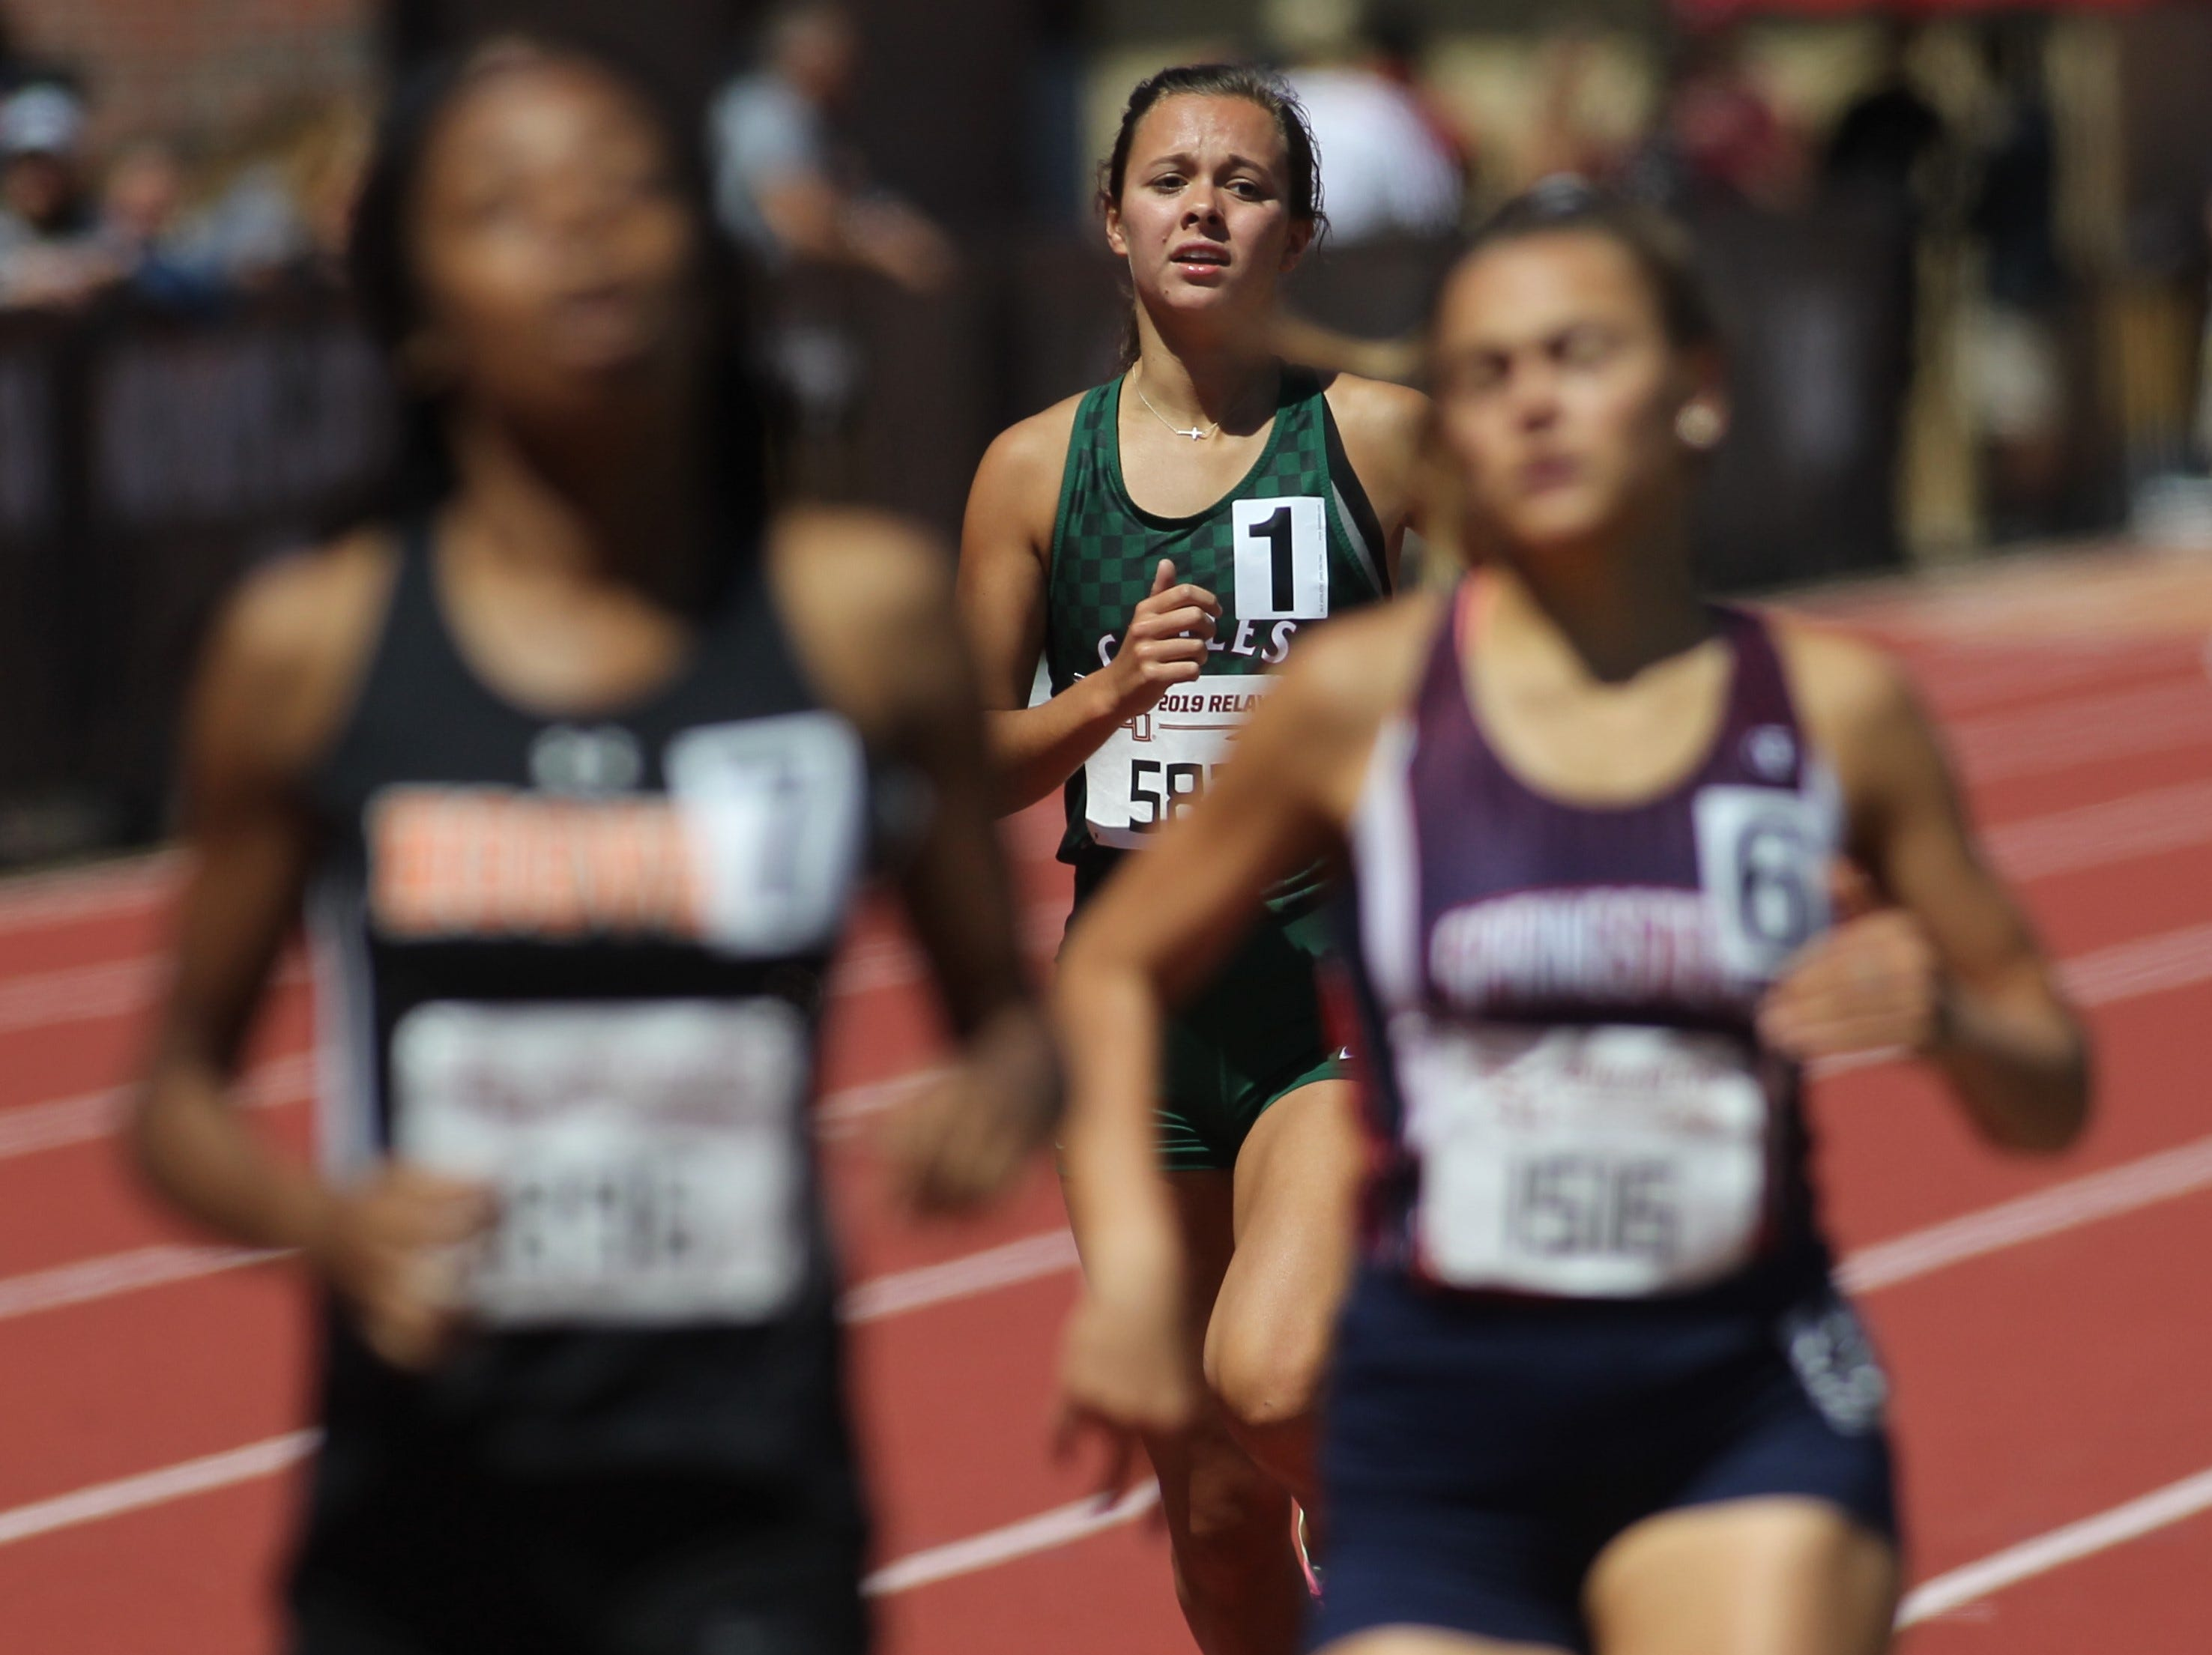 Chiles senior Olivia Miller competes in the 800-meter run during the FSU Relays at Mike Long Track on Friday, March 22, 2019.